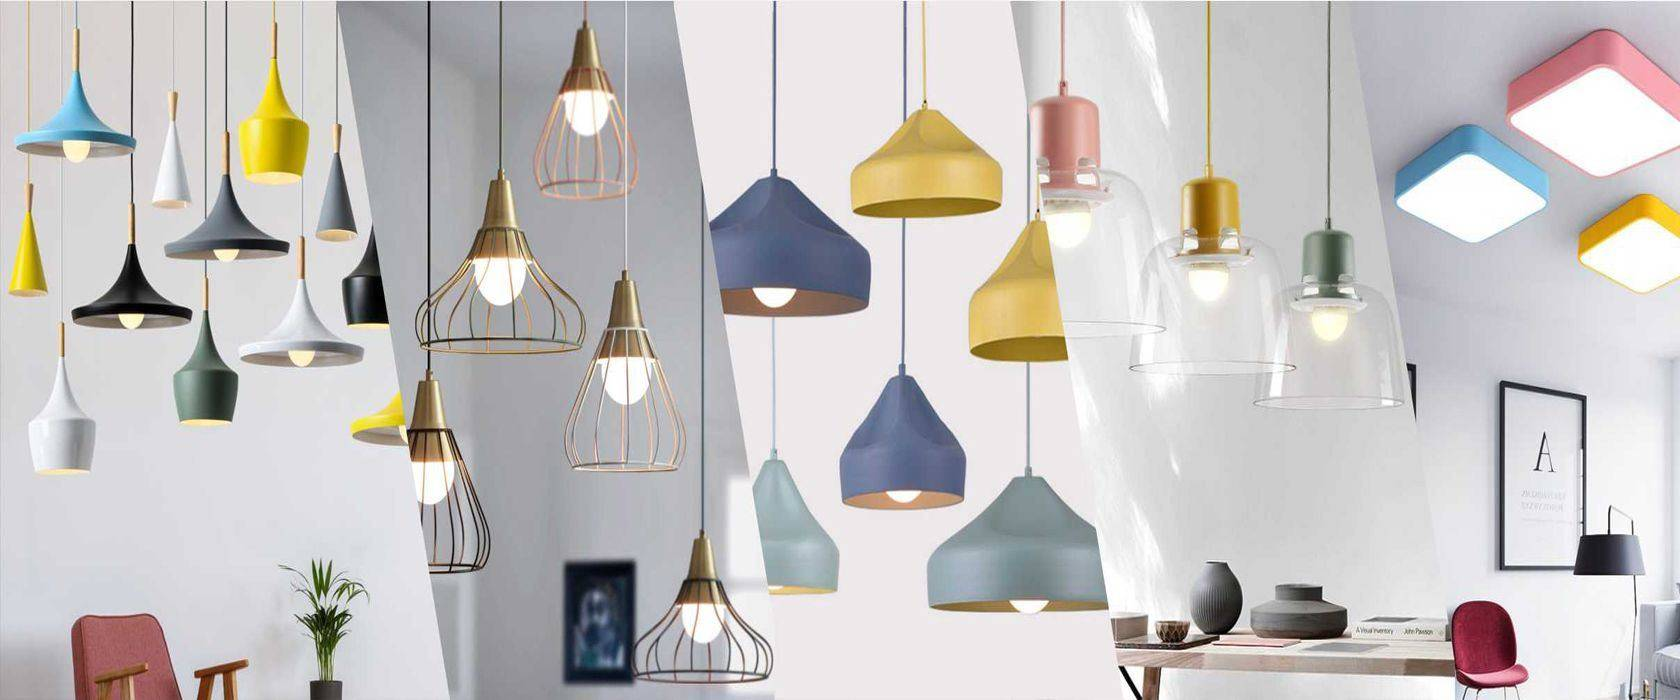 Home lighting pendant light